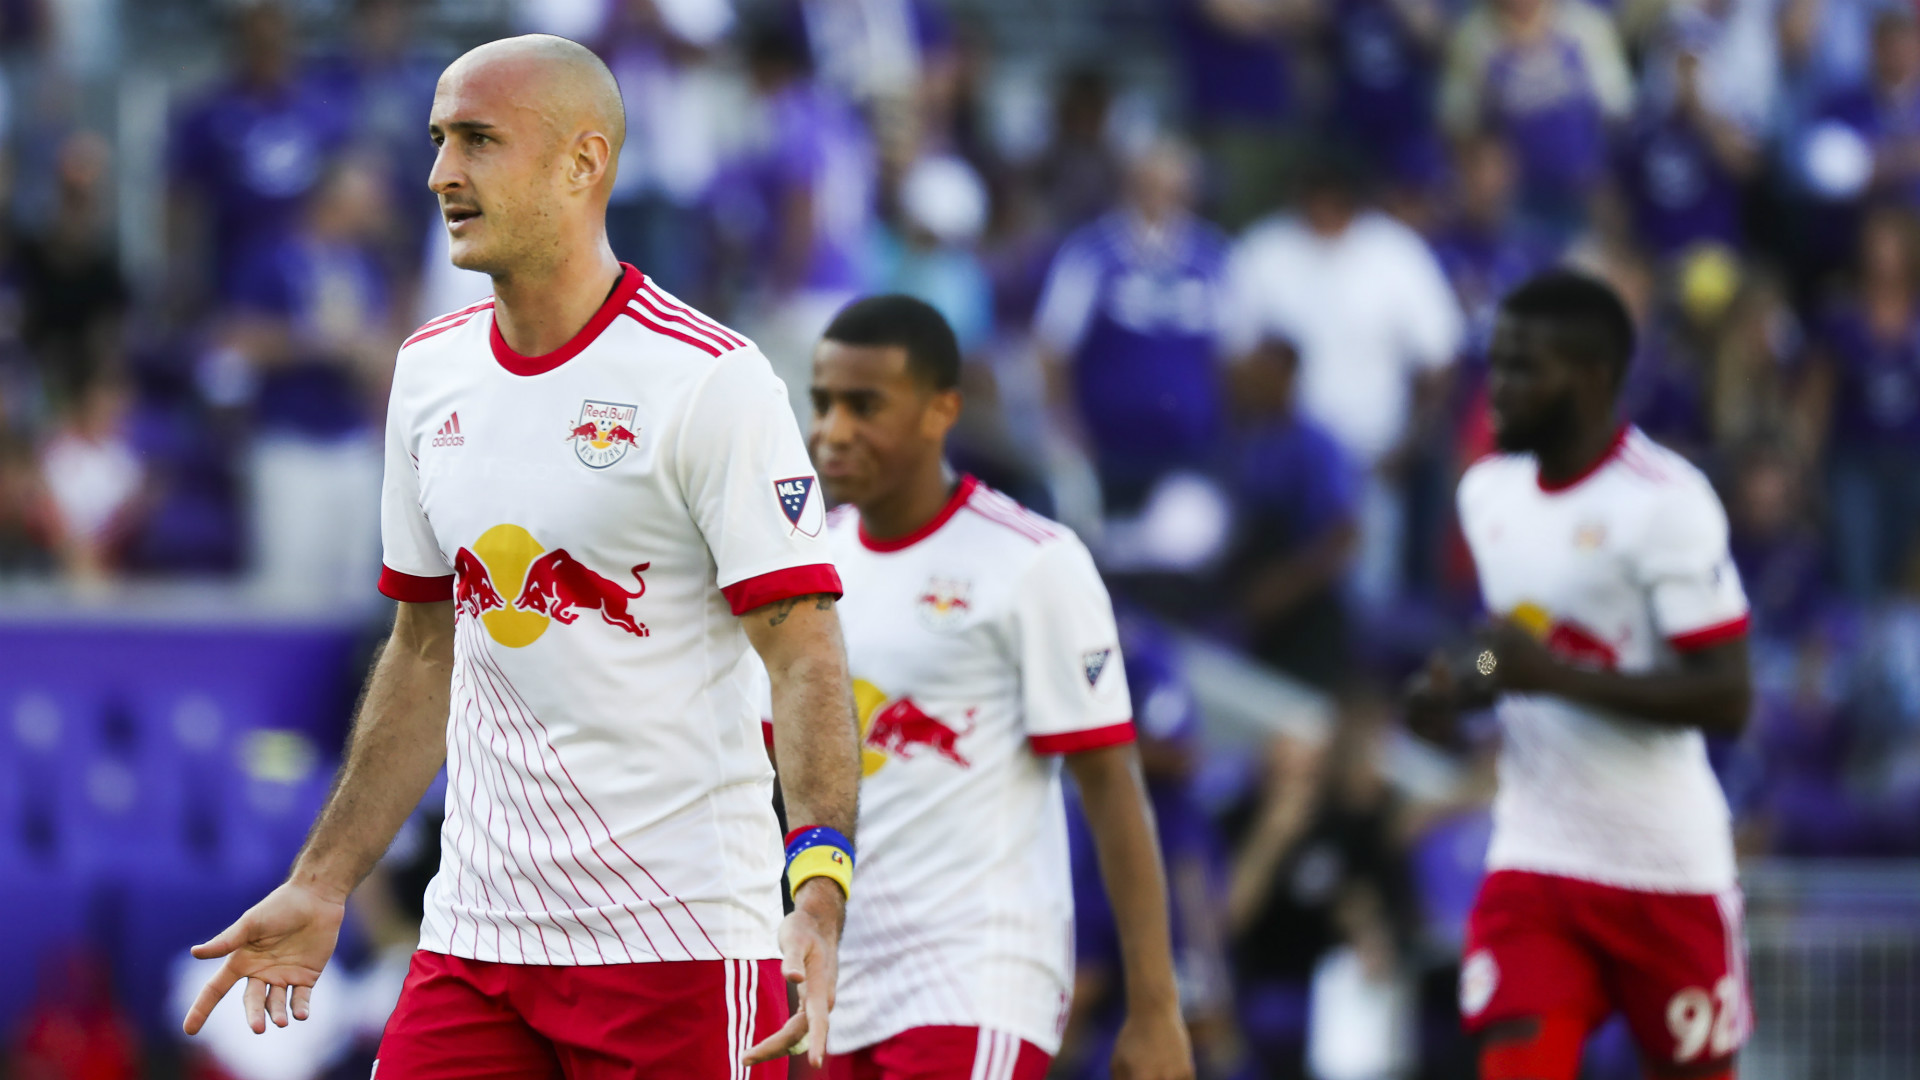 Aurelien Collin New York Red Bulls